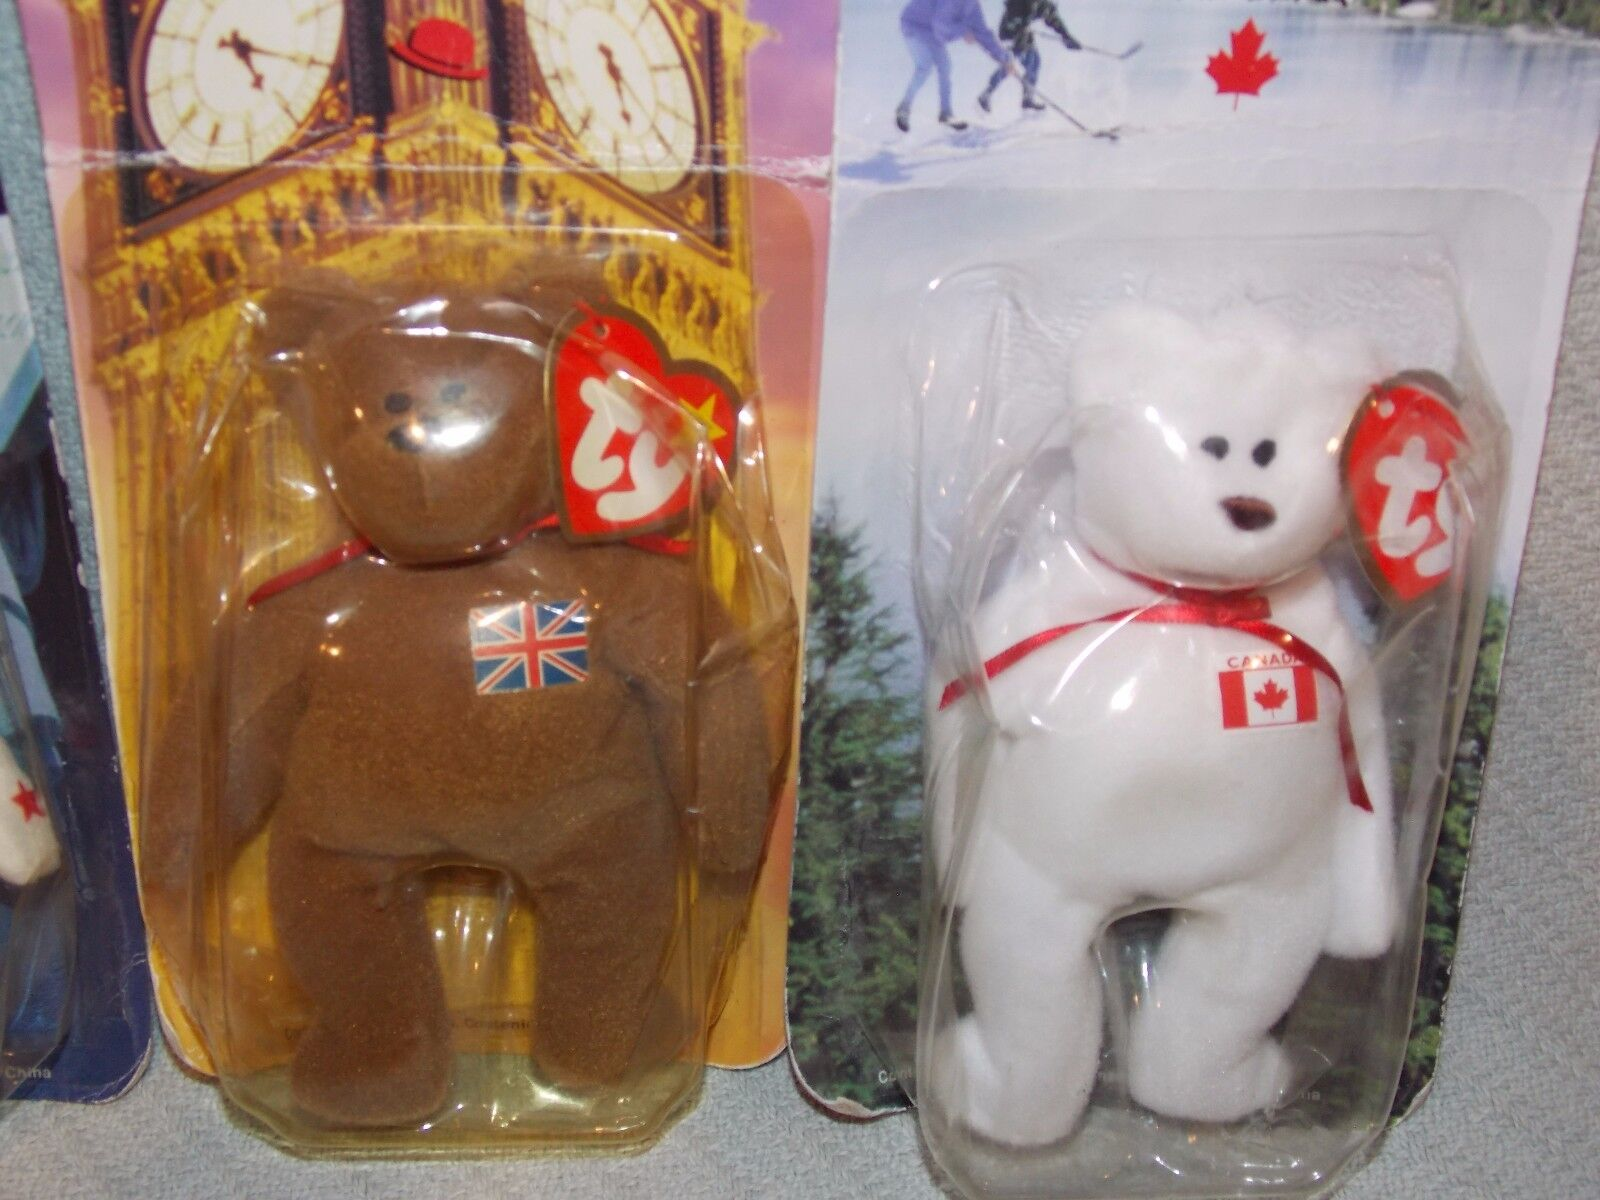 NIP Complete Complete Complete 4  The Bear  Collection TY Beanie Ronald McDonald House Charities 9c4612